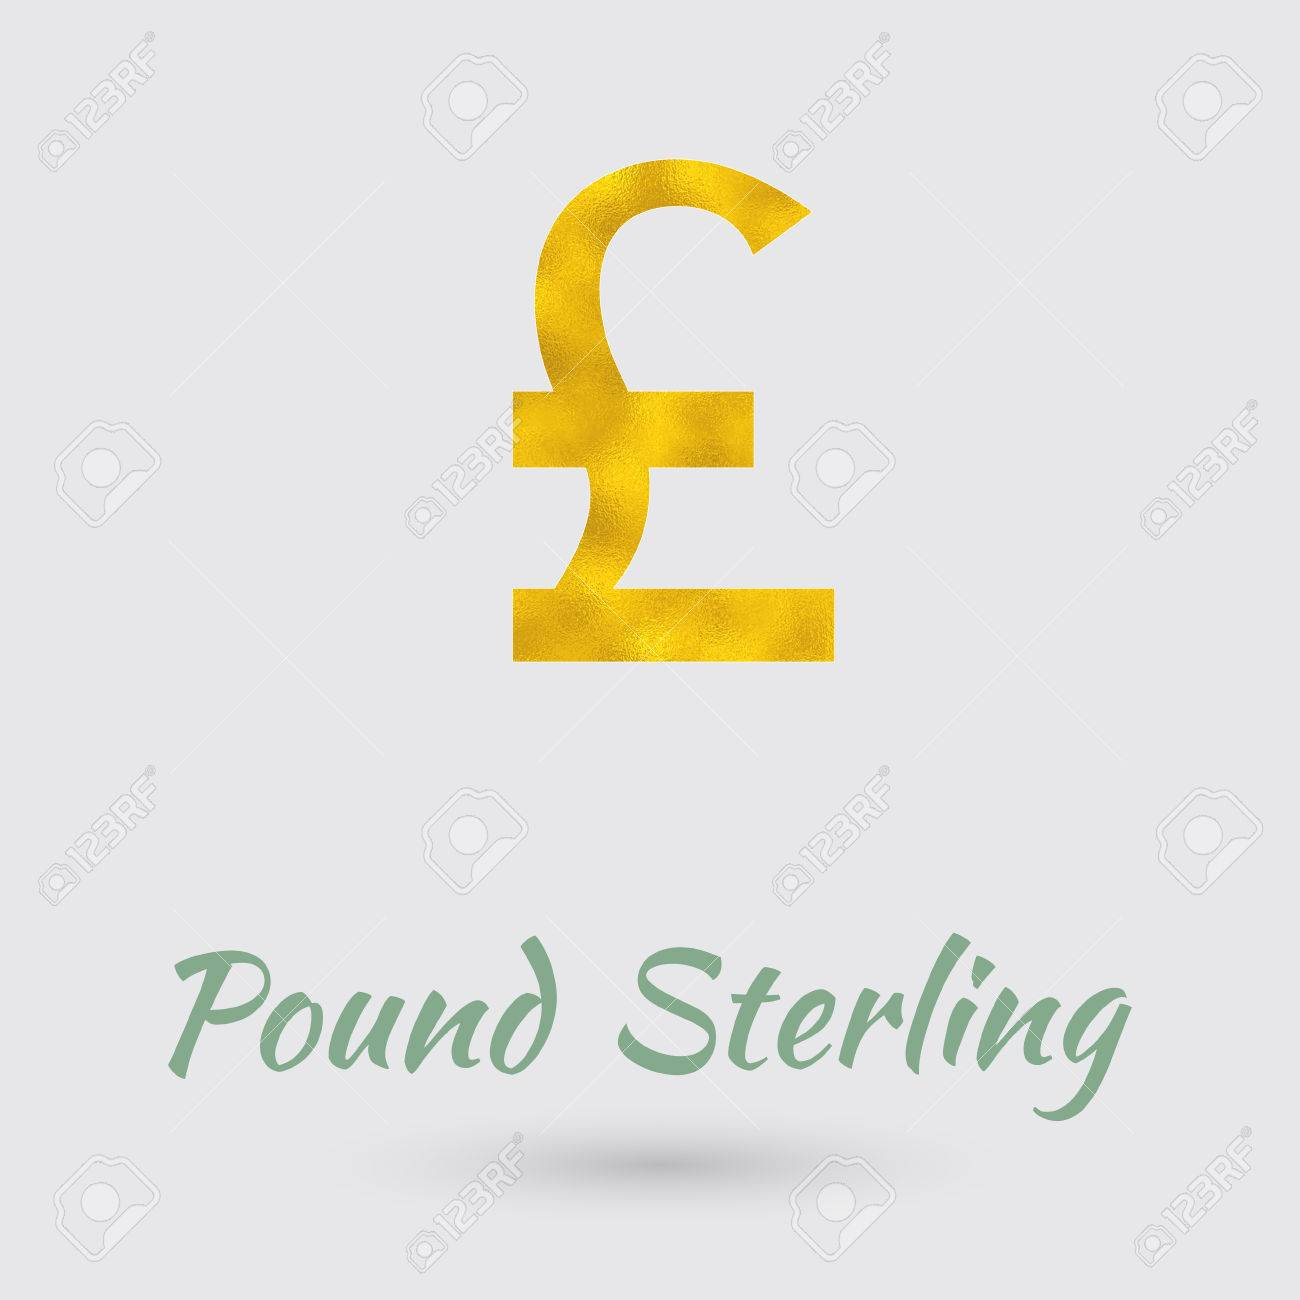 Symbol Of The Pound Sterling Currency With Golden Texture Text